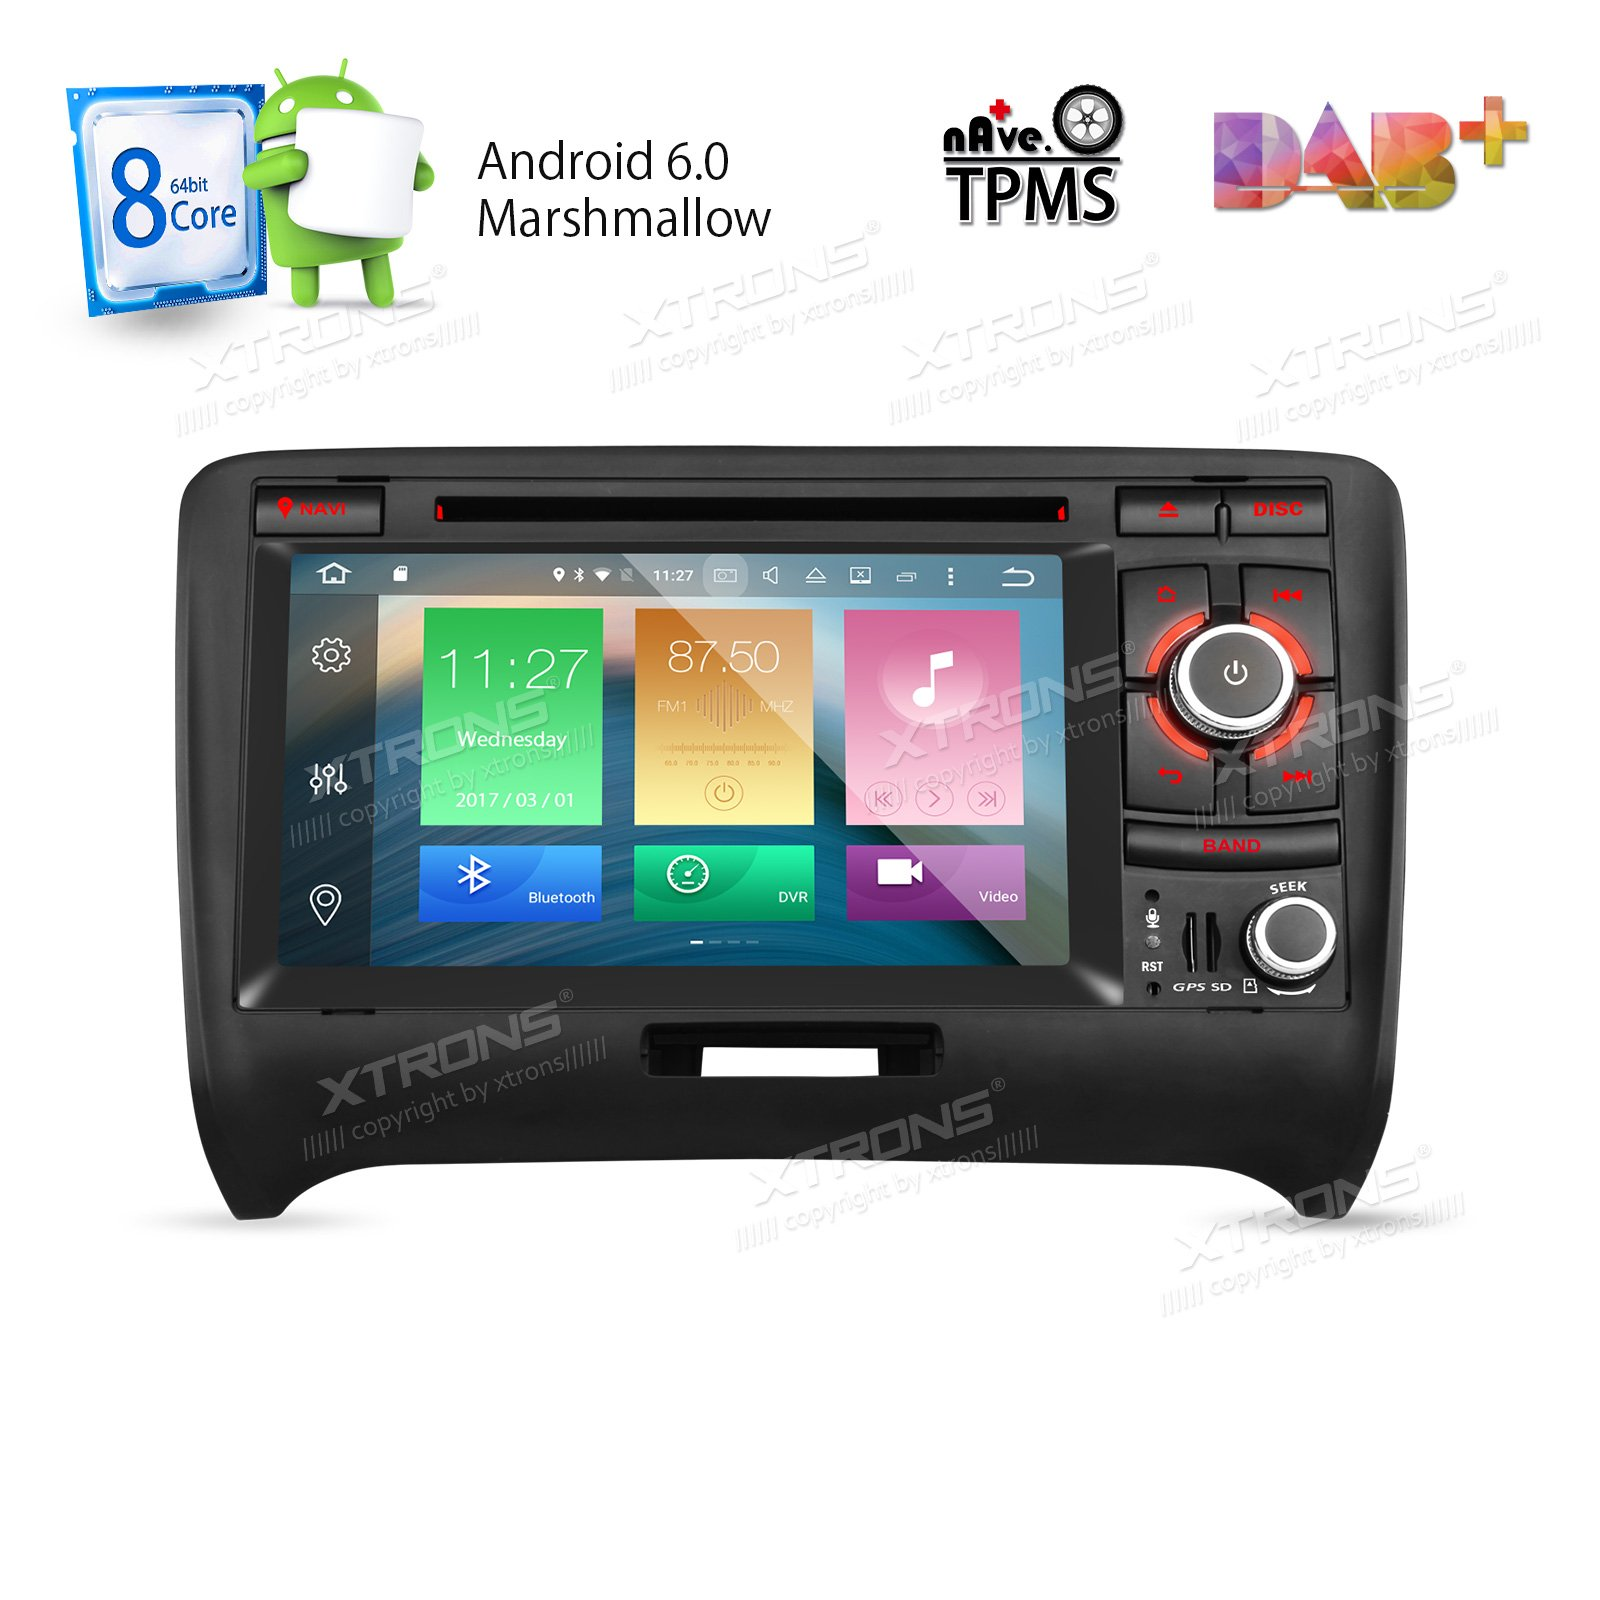 XTRONS 7 Inch Android 6.0 Octa-Core Capacitive Touch Screen Car Stereo Radio DVD Player GPS CANbus Screen Mirroring Function OBD2 Tire Pressure Monitoring for Audi TT MK2